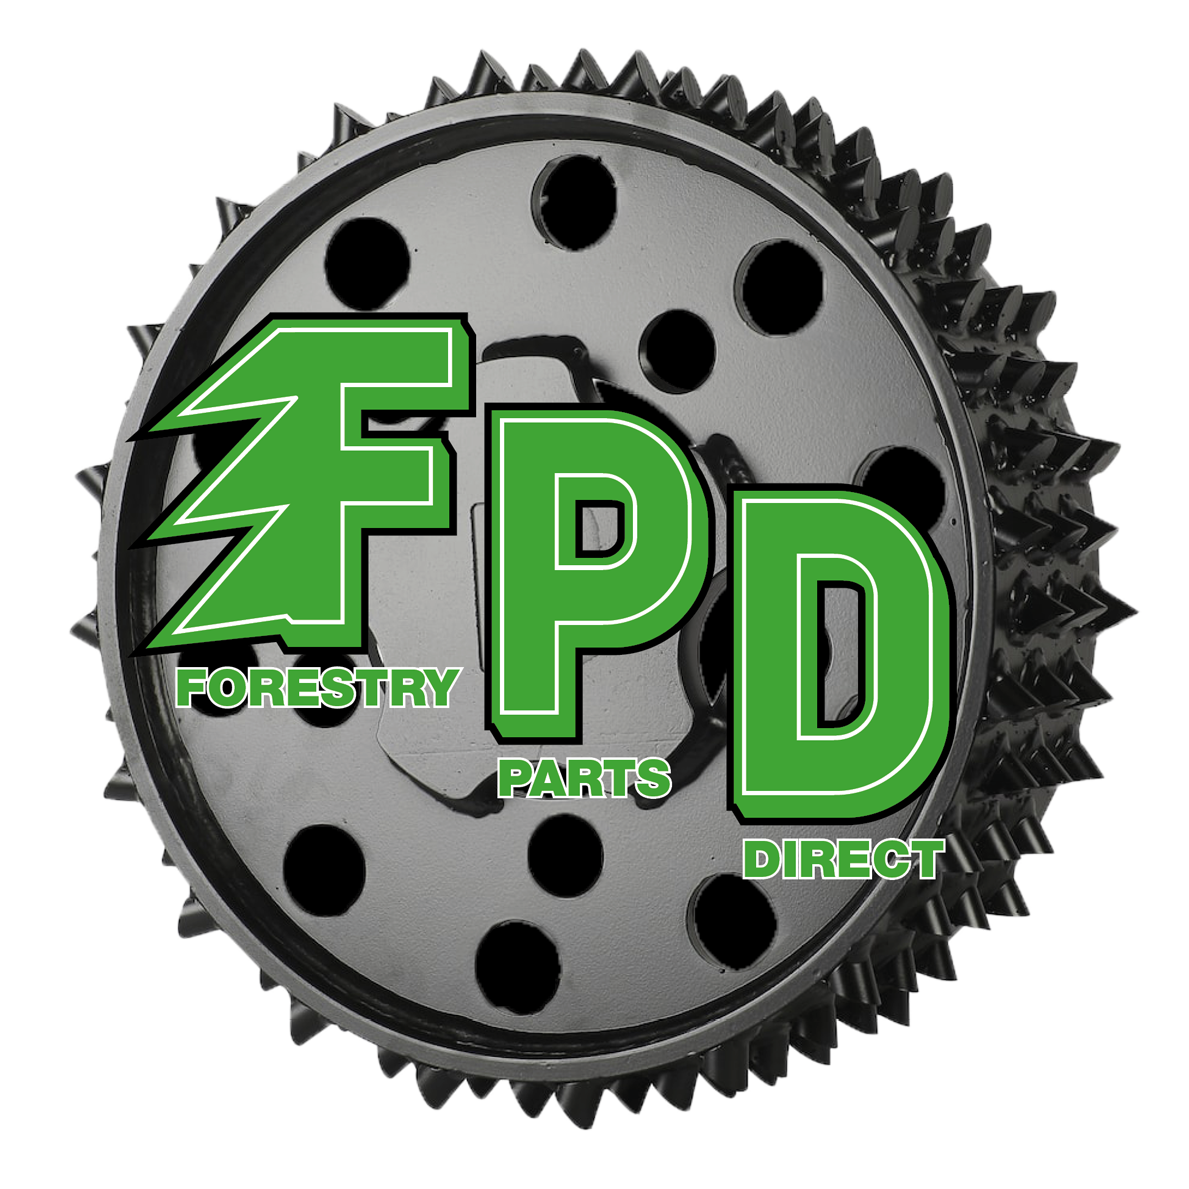 Forestry Parts Direct Logo